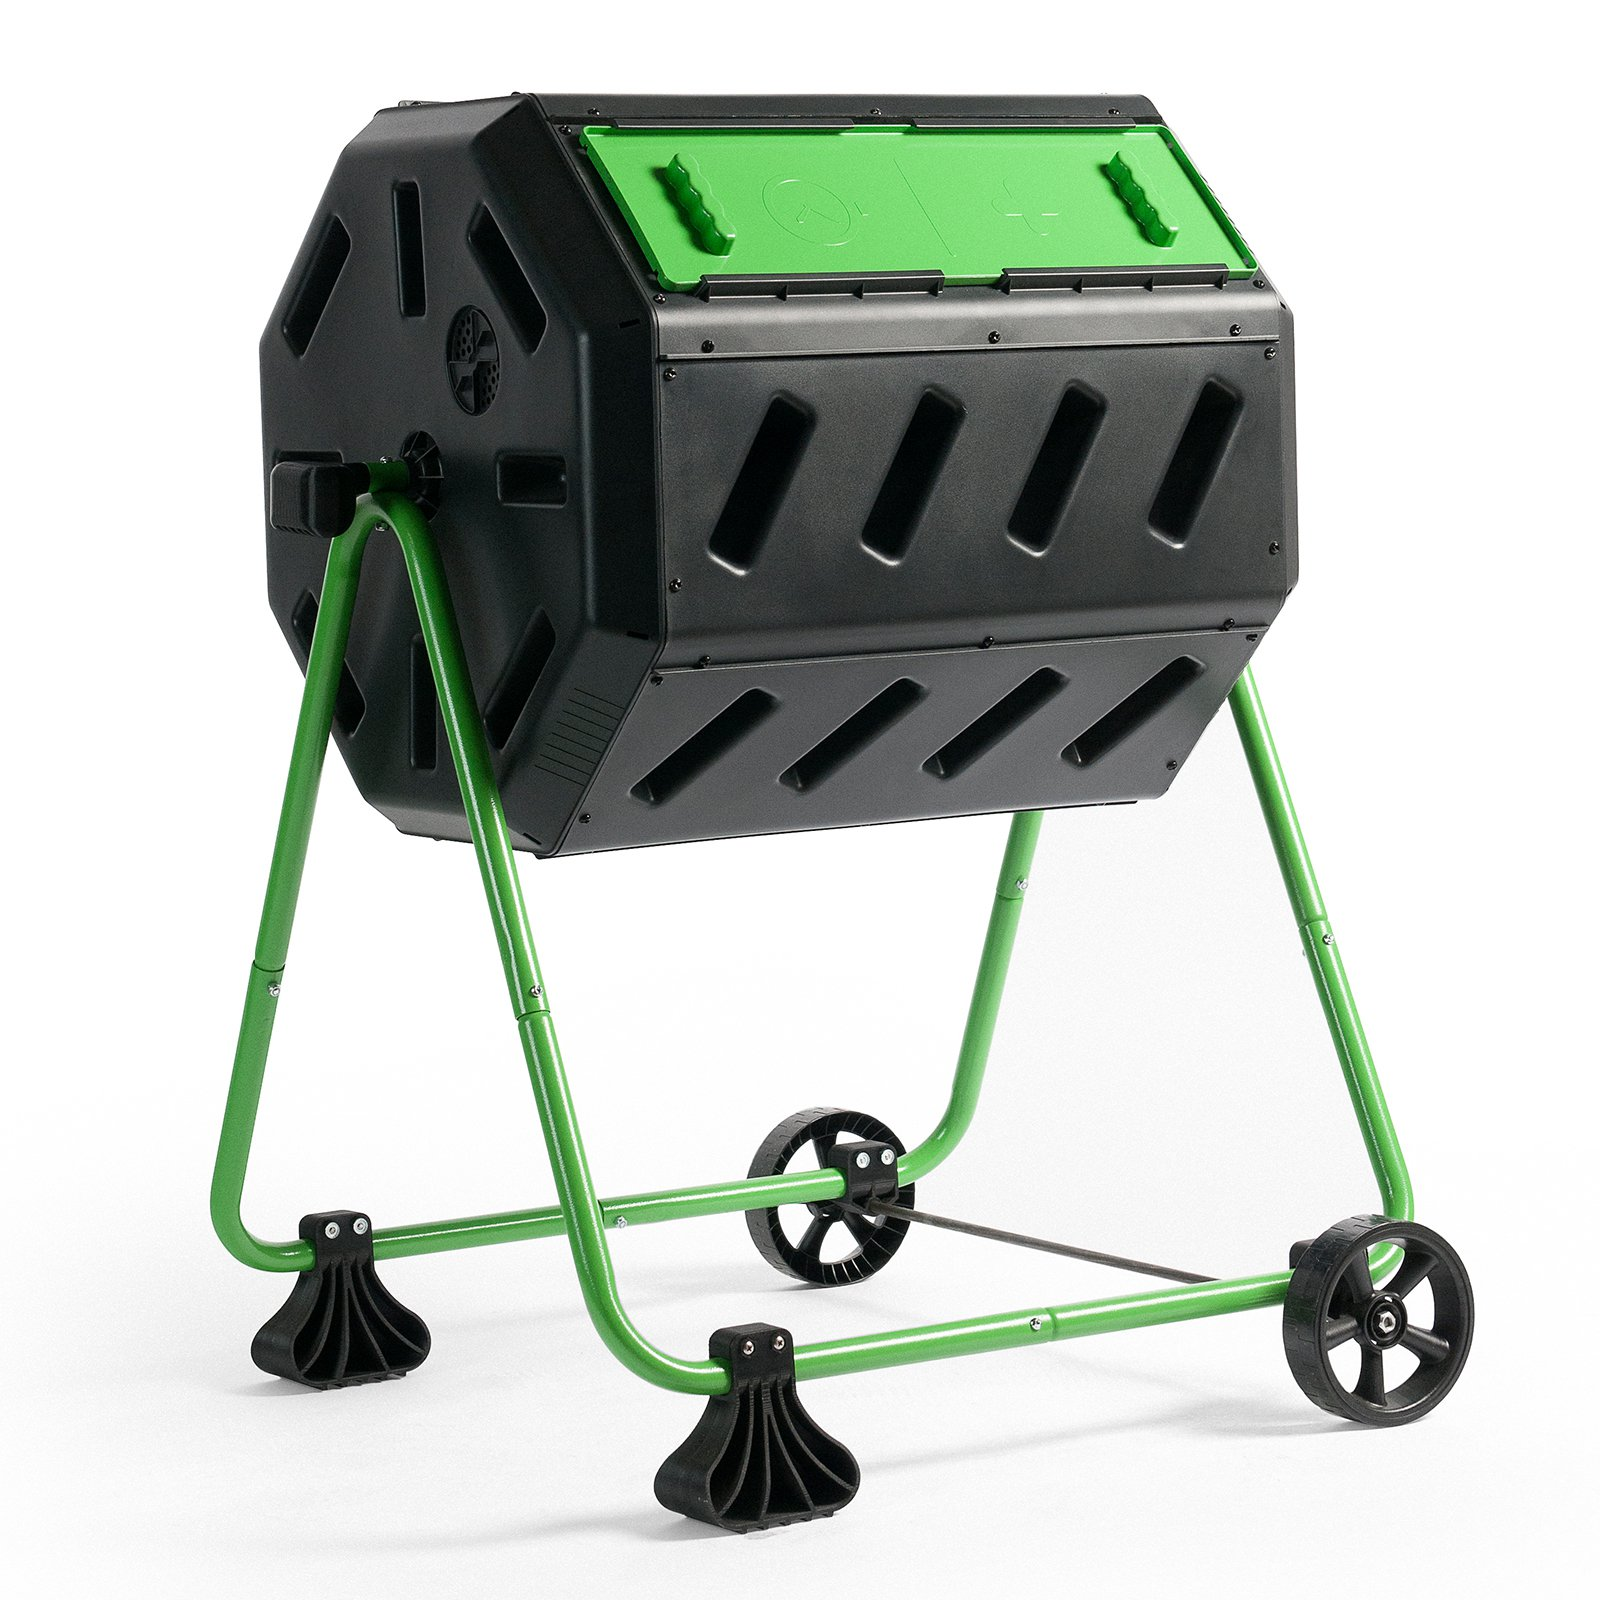 Hot Frog Mobile Dual-Chamber Compost Tumbler by Composters